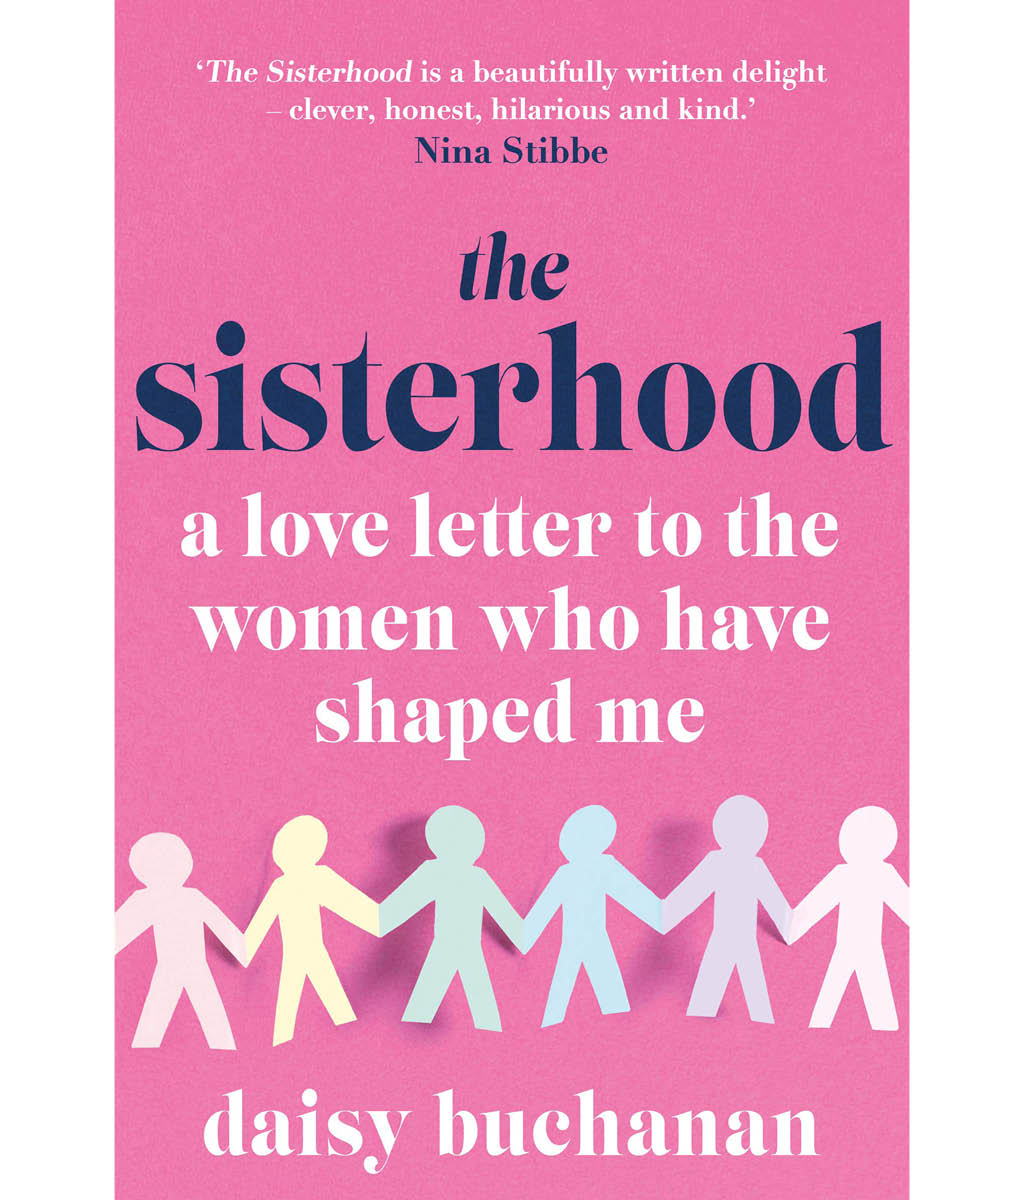 The Sisterhood: A Love Letter to the Women Who Have Shaped Us Daisy Buchanan